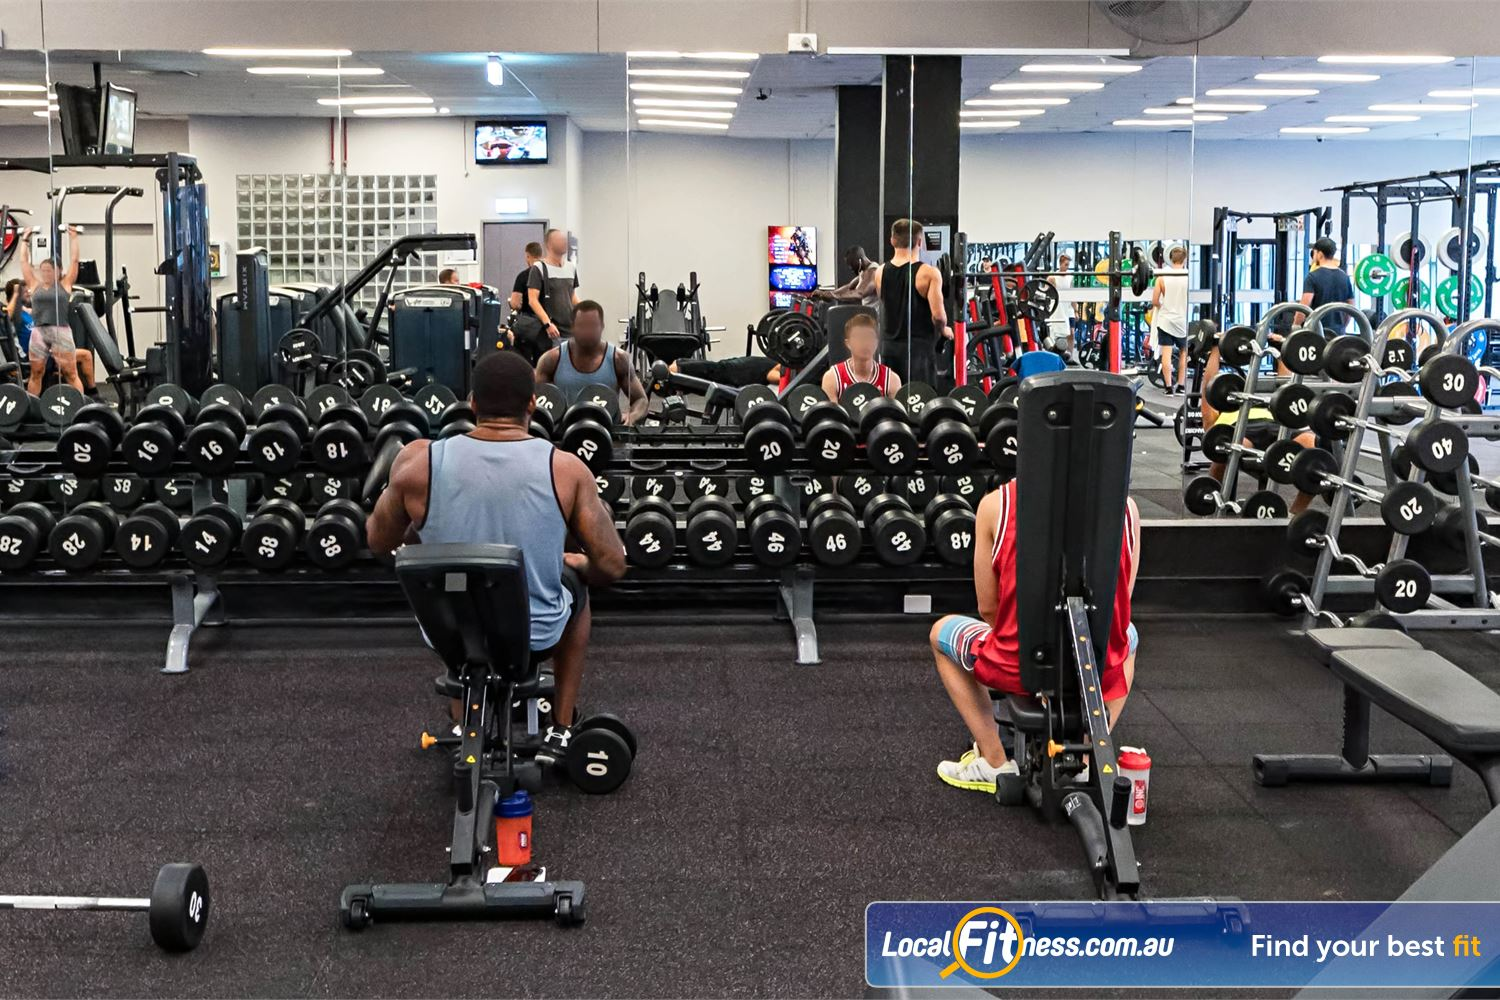 Fitness First Platinum Spring St Near Bellevue Hill Our free-weights area includes a full range of dumbbells, barbells, benches and more.